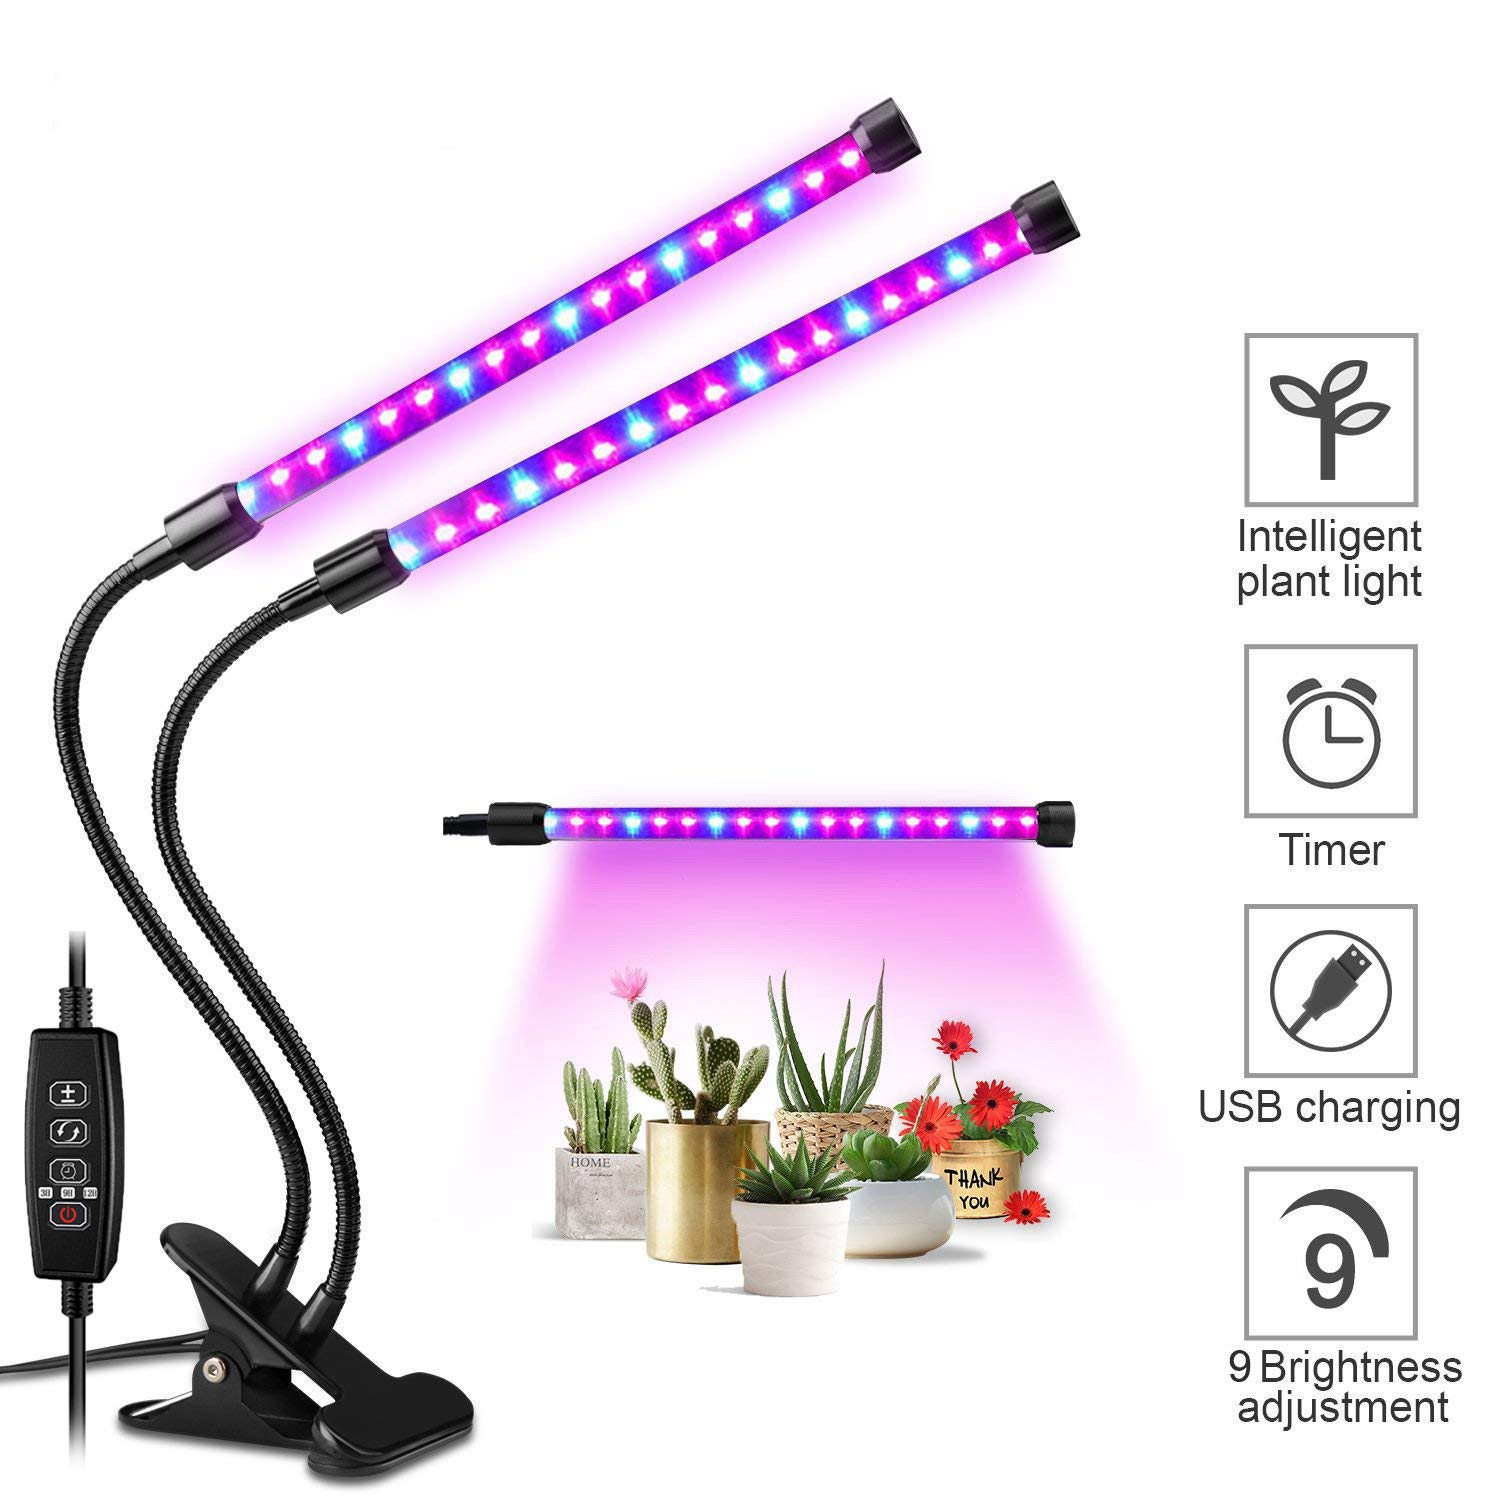 Growing Lamp for Indoor House Plants and Garden, 20W Plant Lights with 40 Red Blue Spectrum LEDs, Adjustable Dual Head Gooseneck Fixture Kit with Stand, 9 Dimmable Levels 3/9/12H Timer LED Grow Light